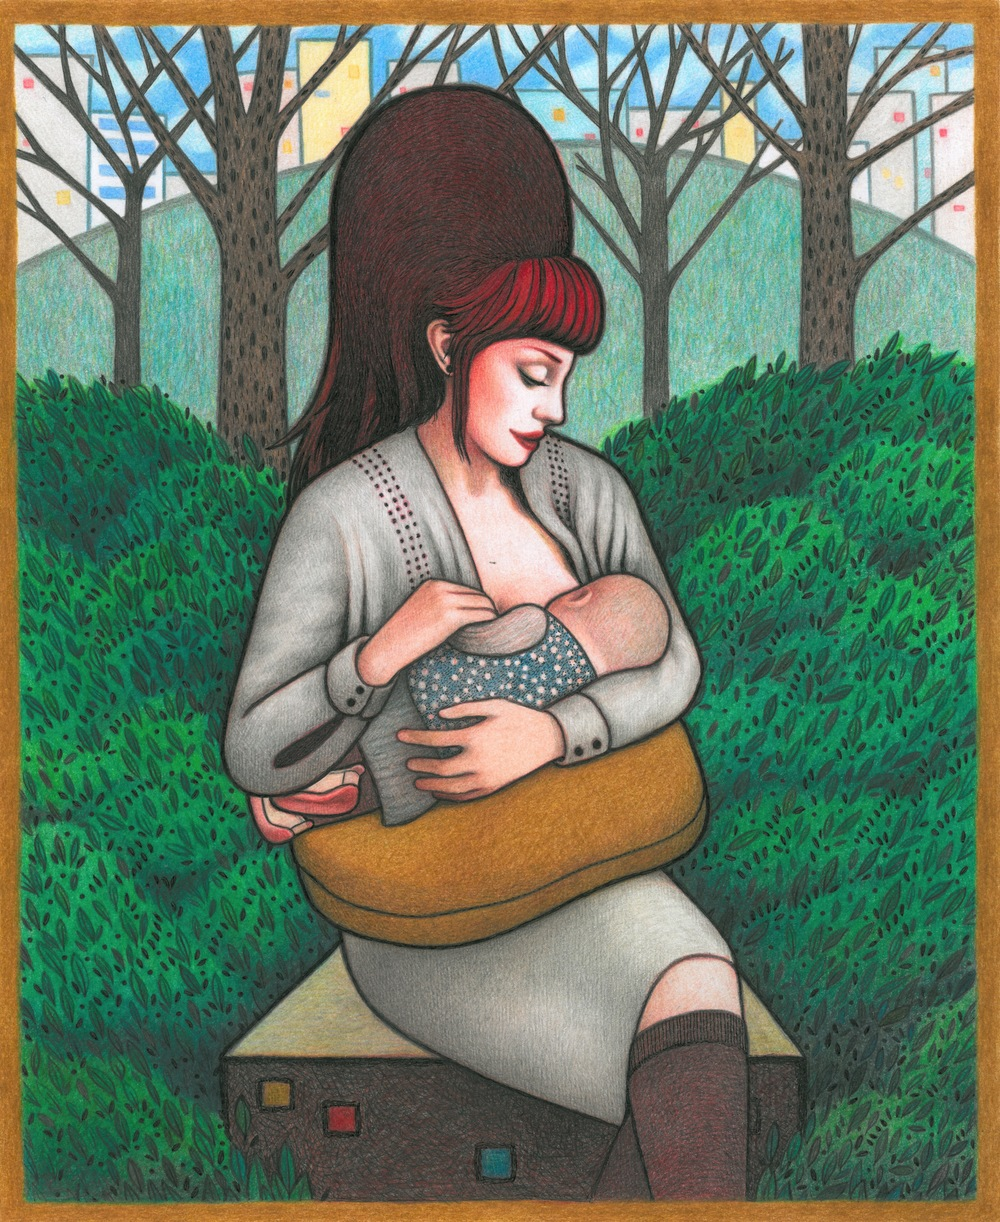 Cub bag nursing illustration